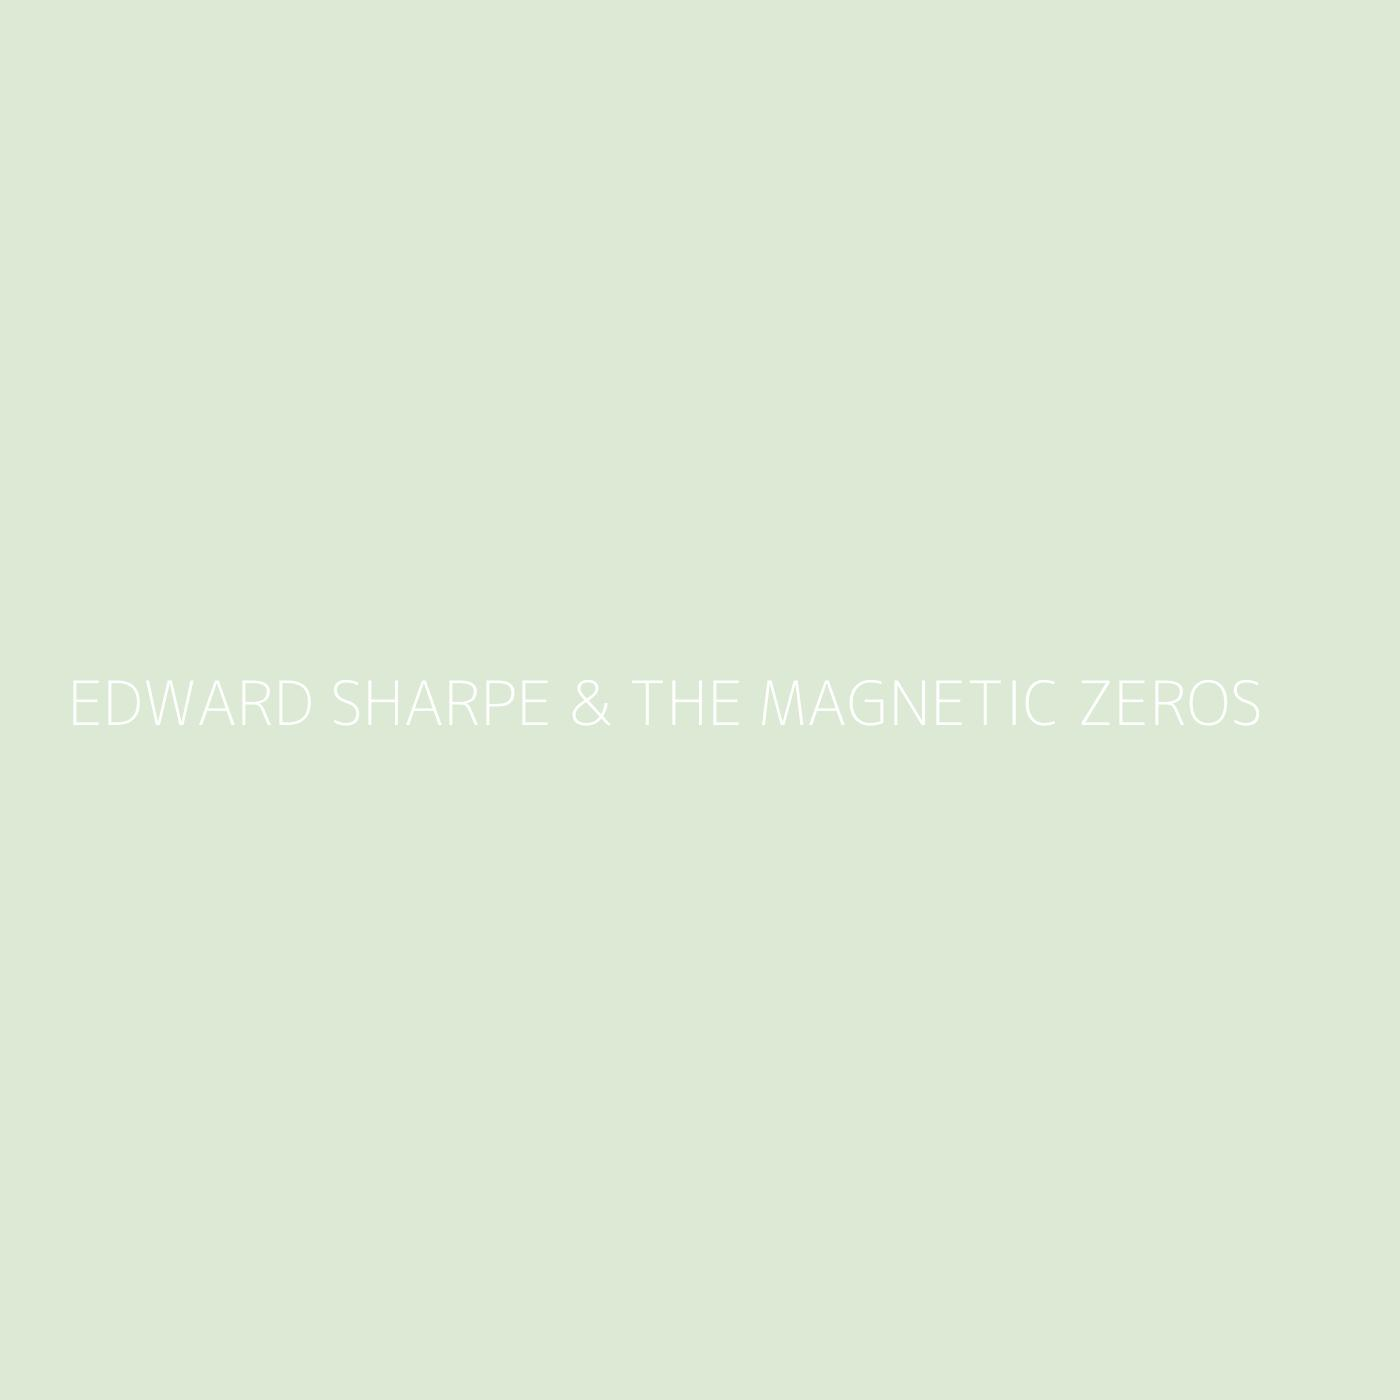 Edward Sharpe & The Magnetic Zeros Playlist Artwork